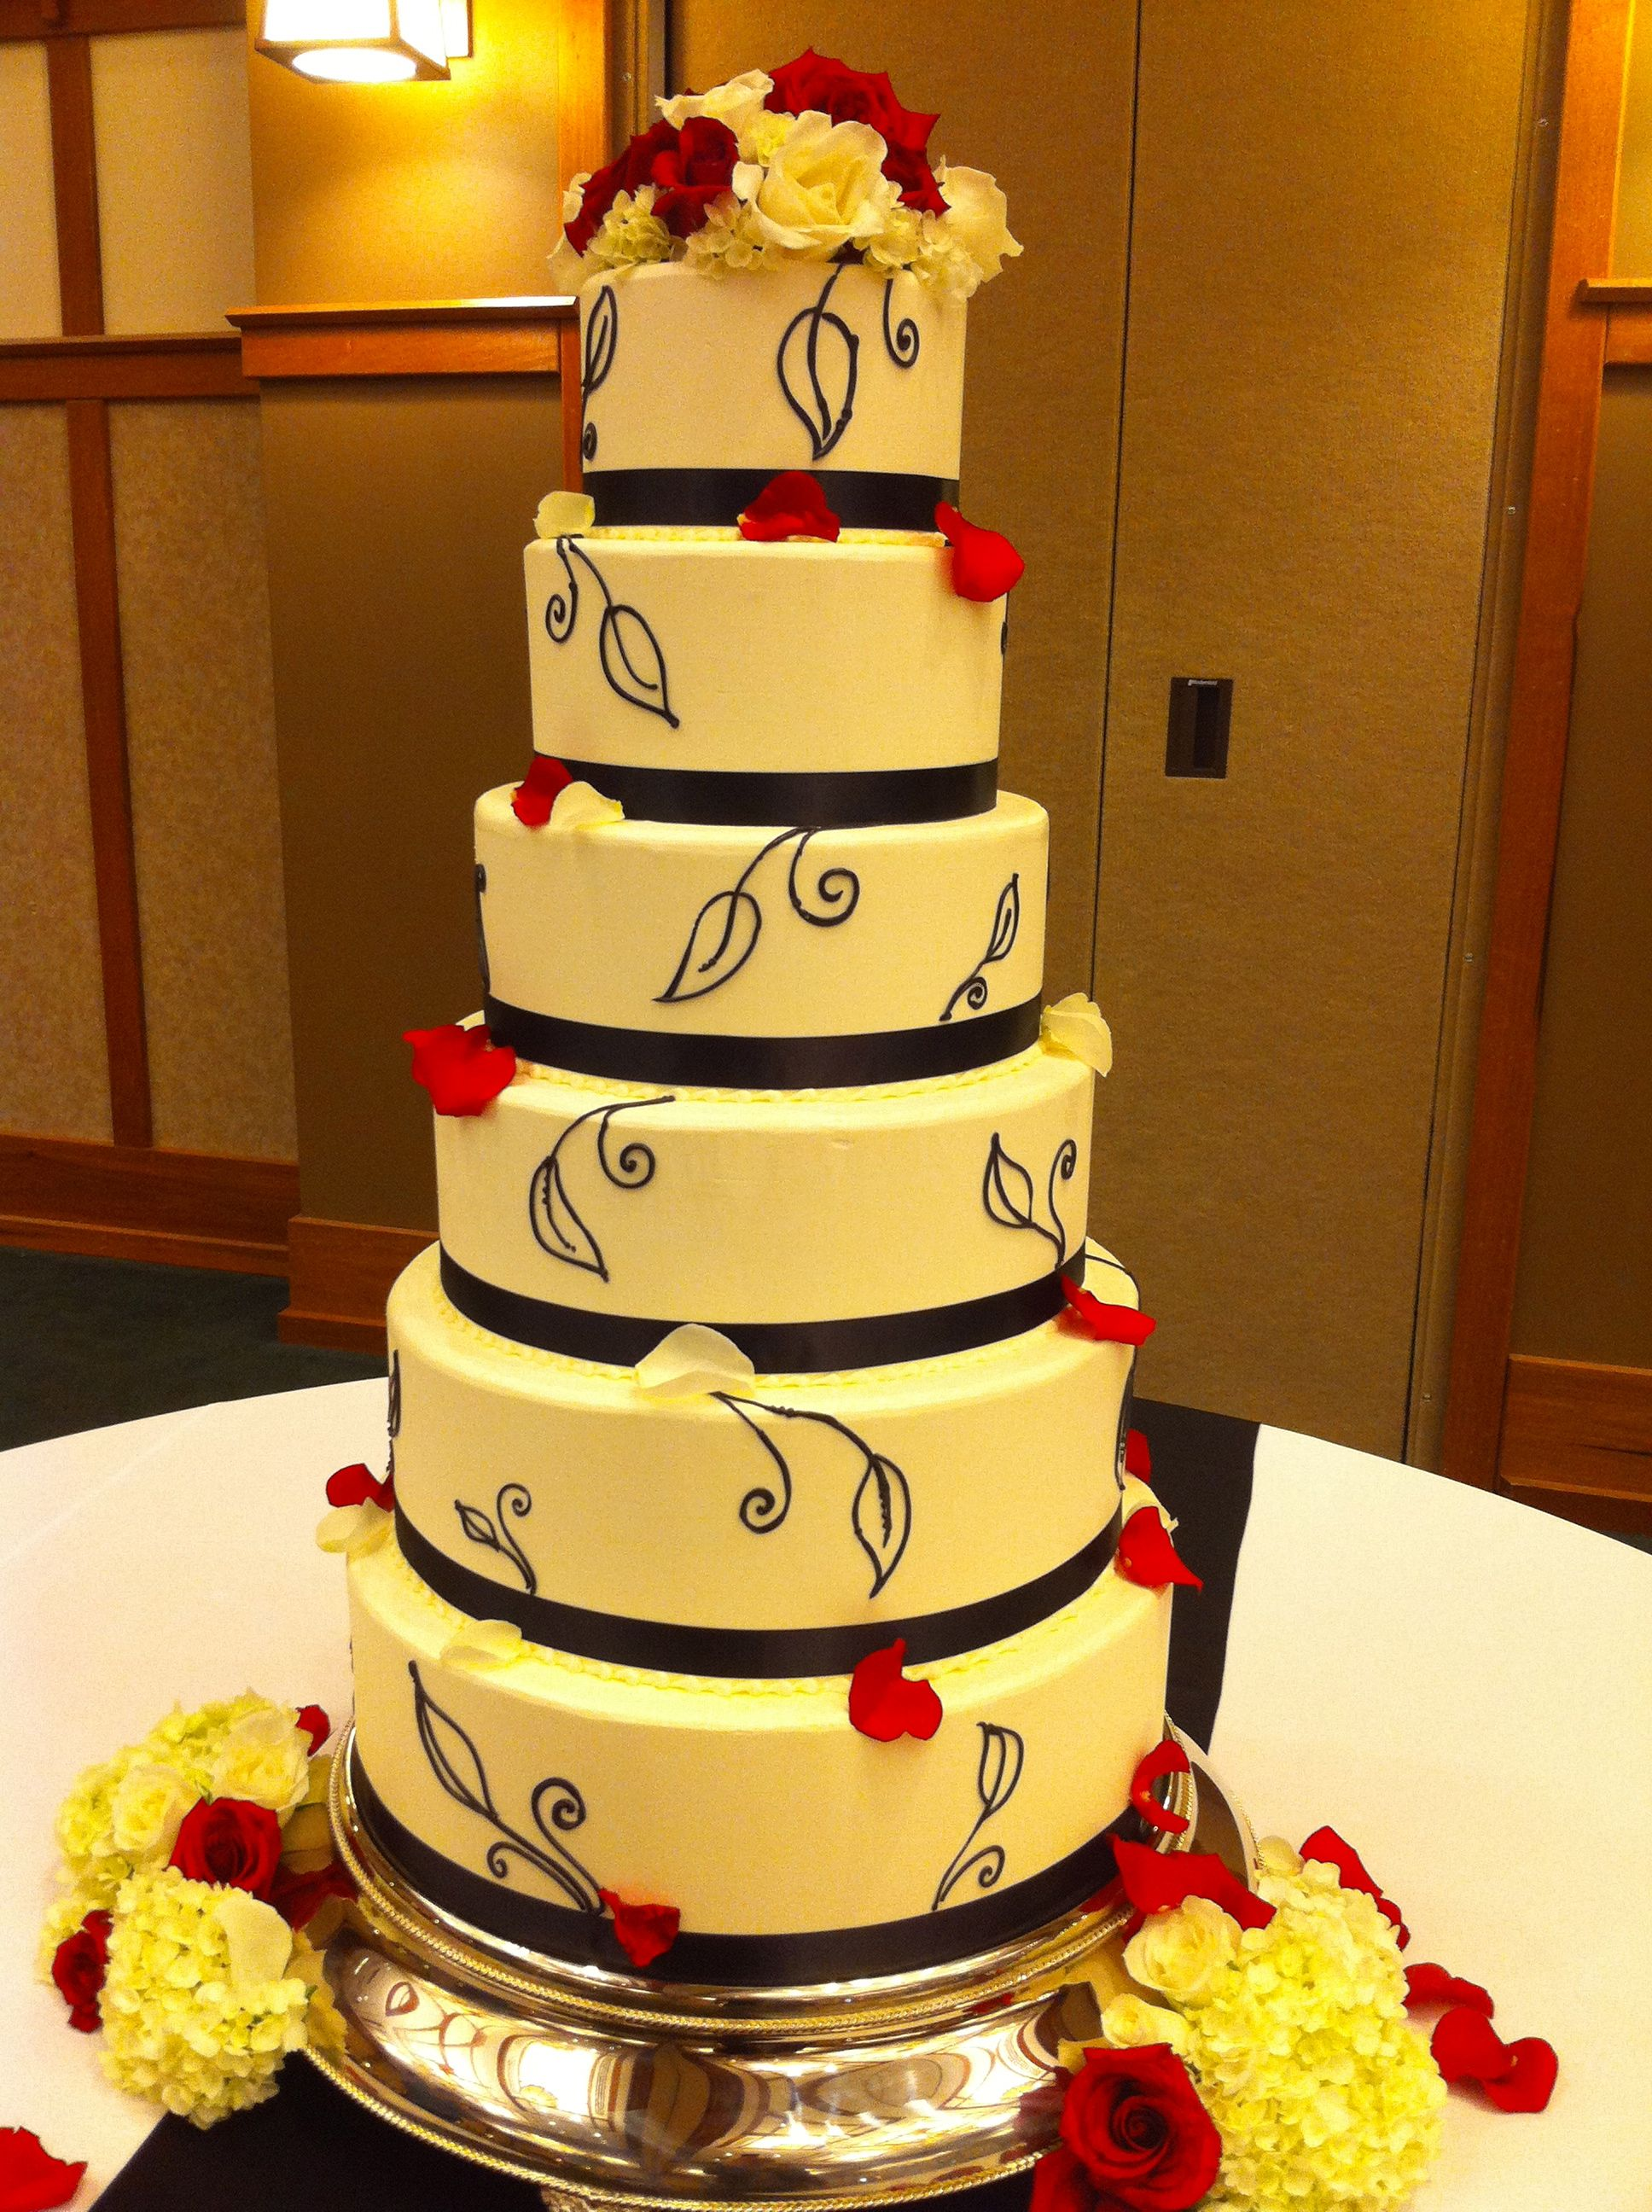 Magpies Bakery Knoxville  TN Buttercream wedding cake adorned with     Magpies Bakery Knoxville  TN Buttercream wedding cake adorned with satin  ribbon  buttercream piping and floral finish   wedding  satin  ido   knoxville